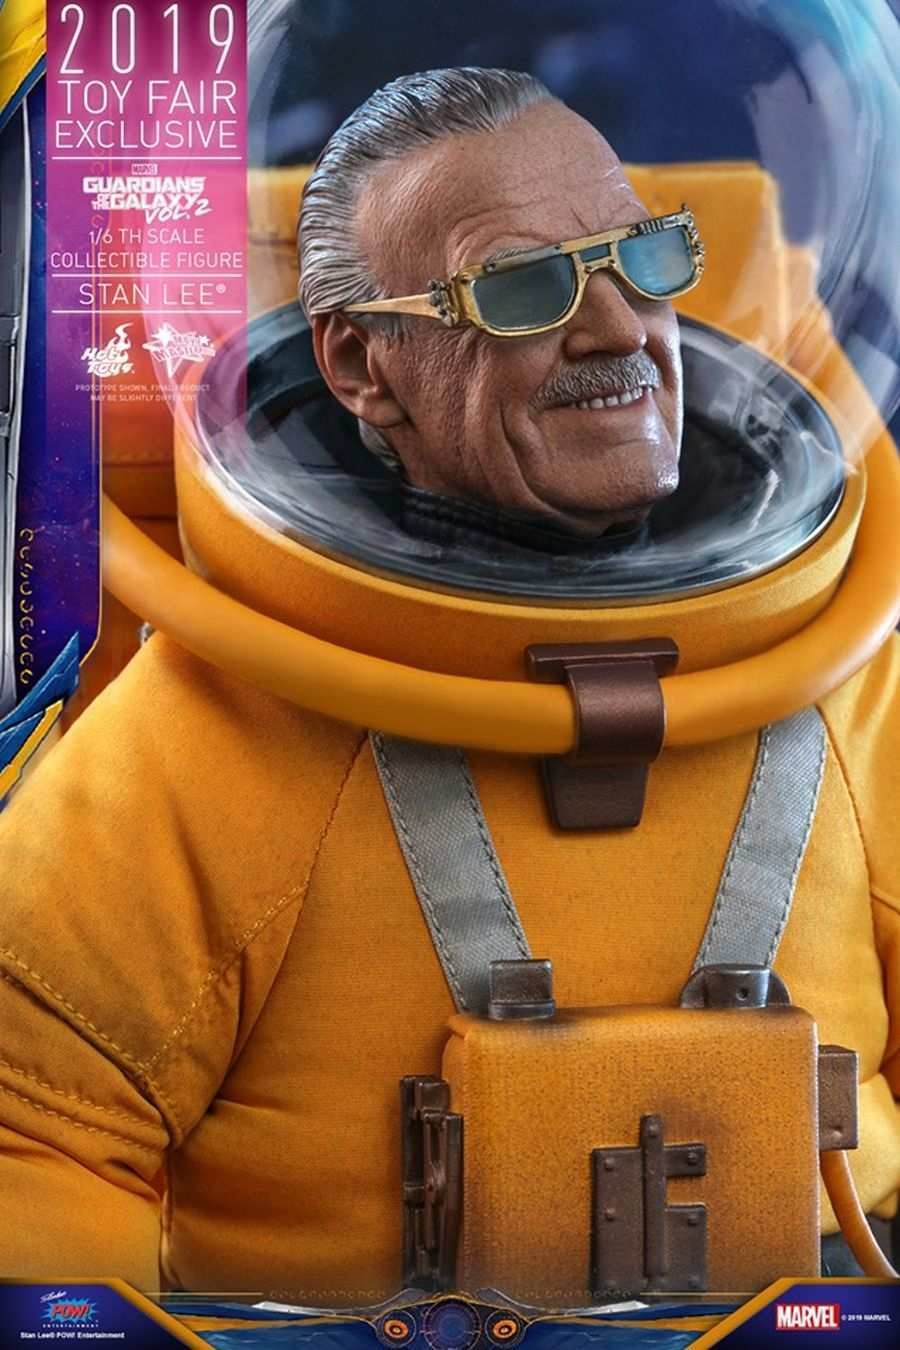 Guardians of the Galaxy Vol. 2 - Stan Lee Collectible Figure 11